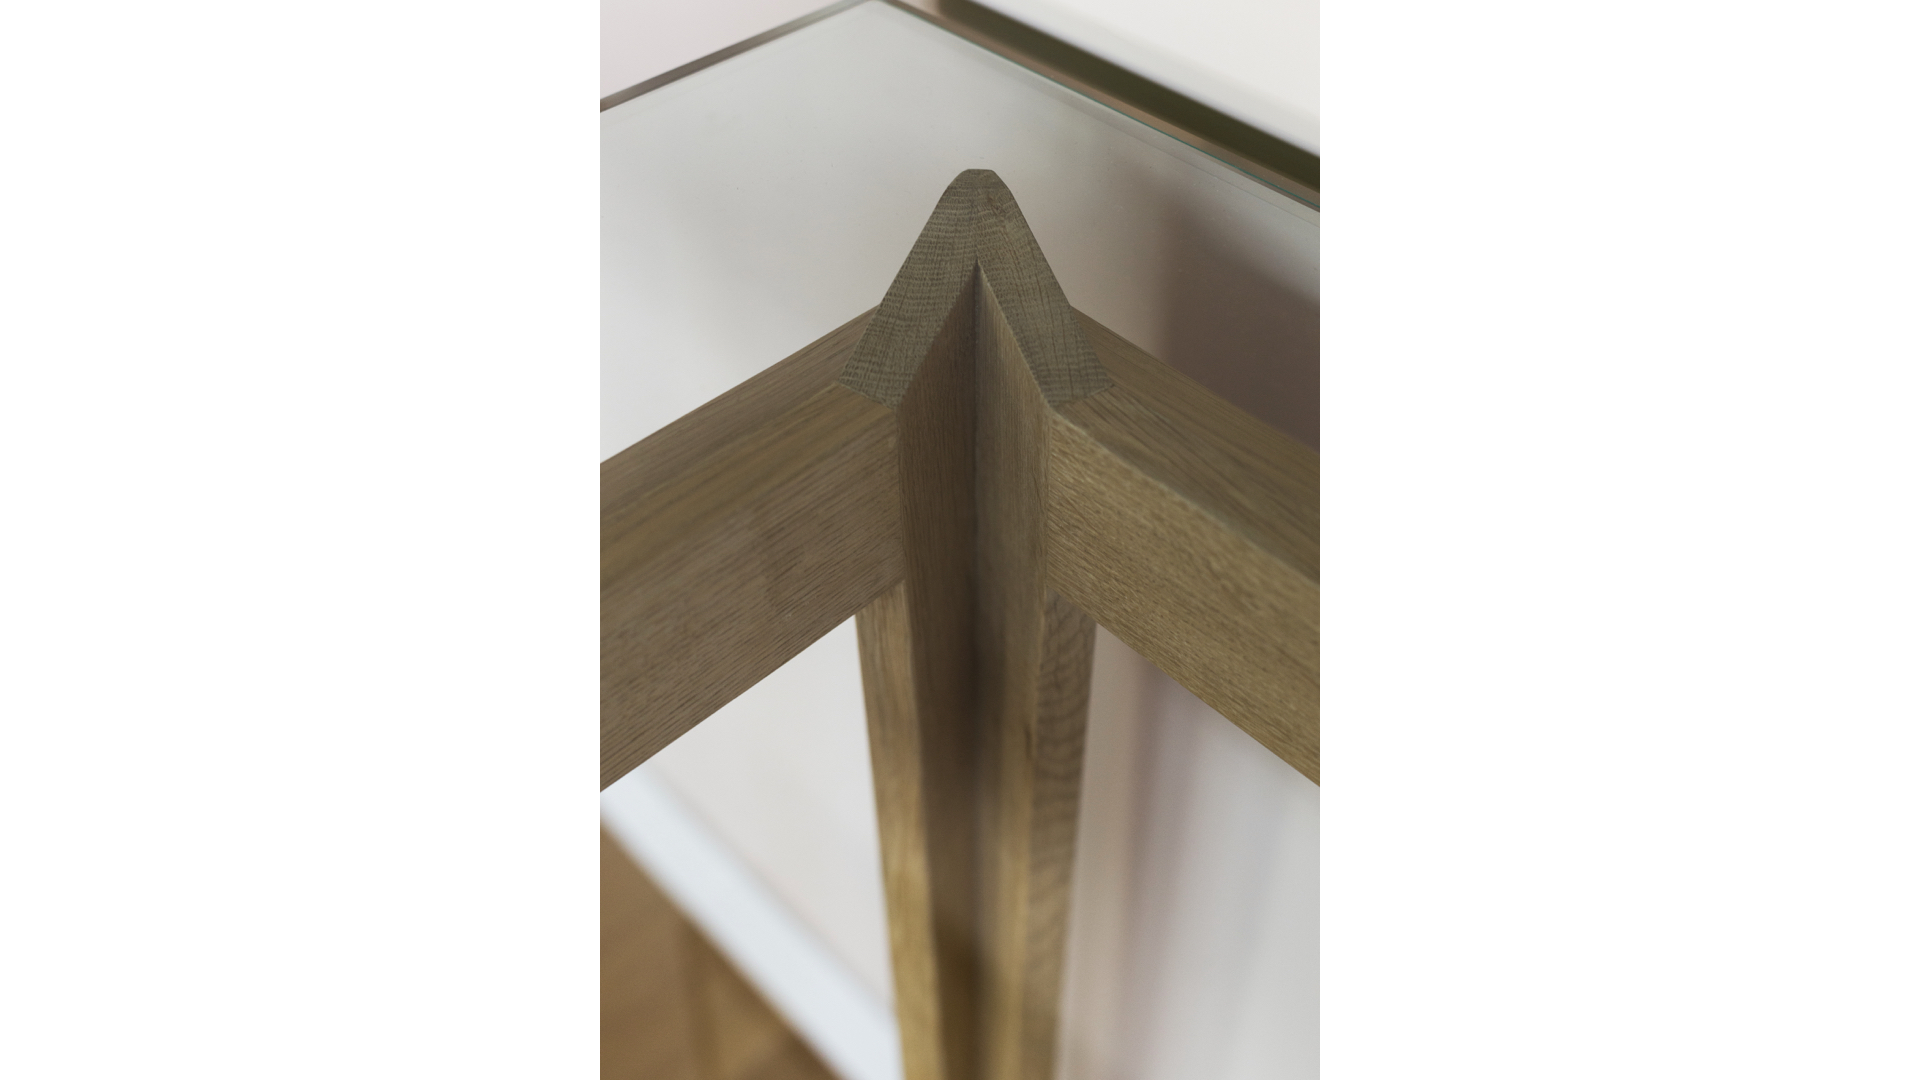 Monti Console Table v | © Bernardo Guillermo Studio